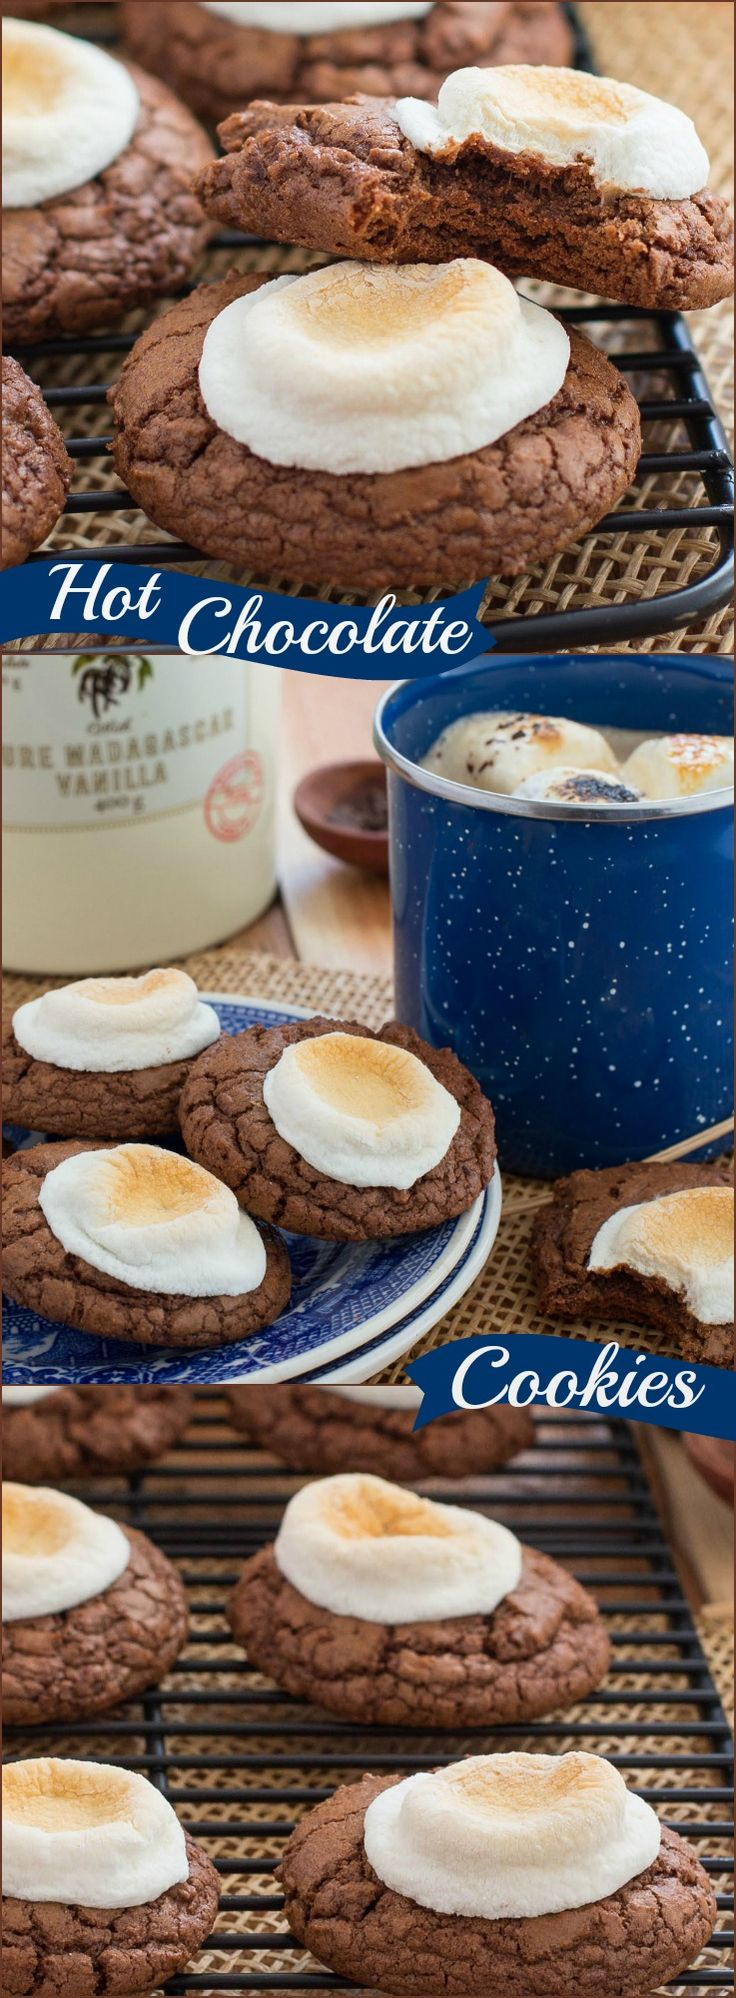 This 5 star recipe for Hot Chocolate Cookies is a chocolate lover's dream cookie! Each cookie is topped with a toasted marshmallow